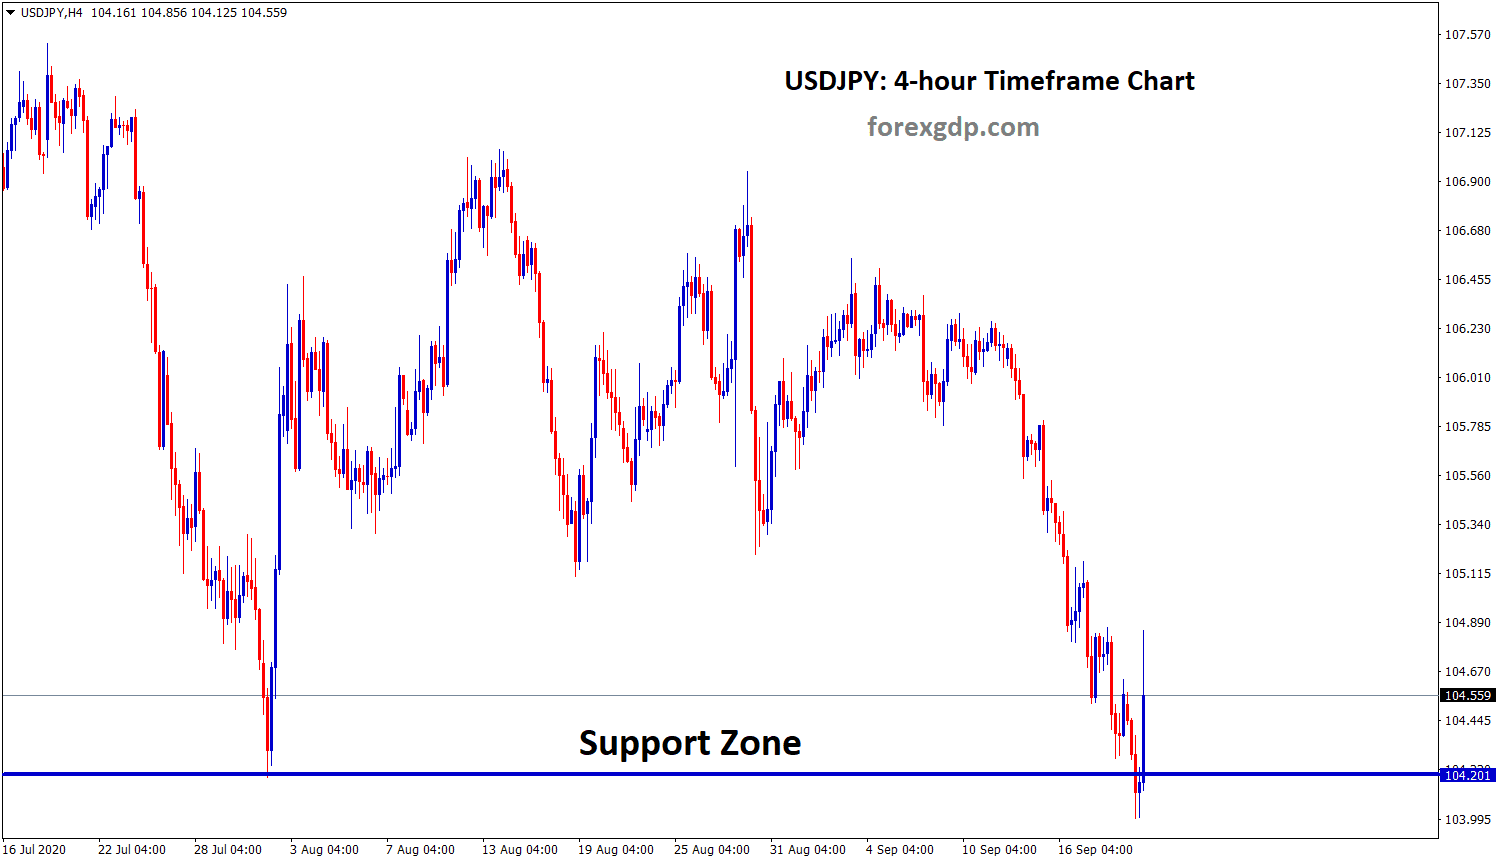 USDJPY bouncing back from the support zone